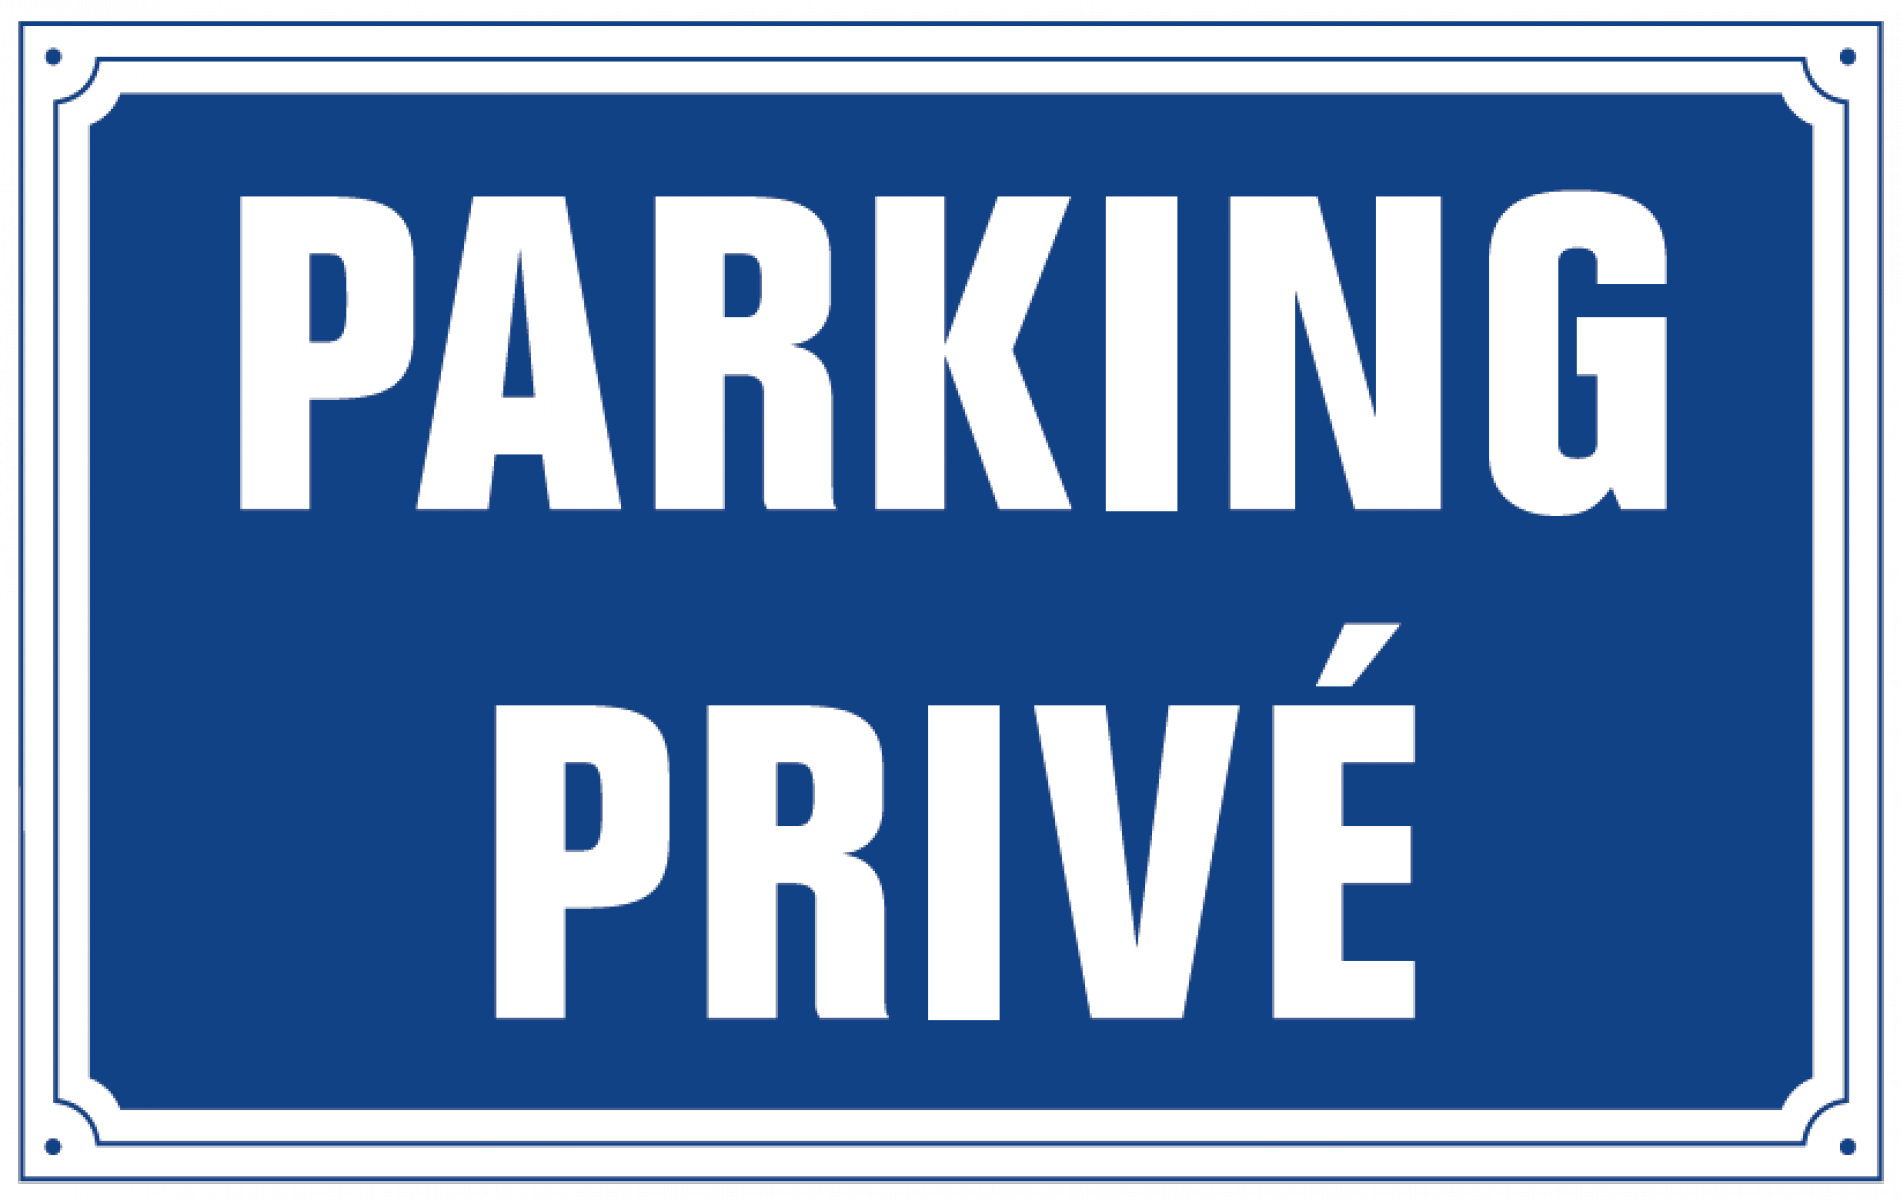 Free private parking